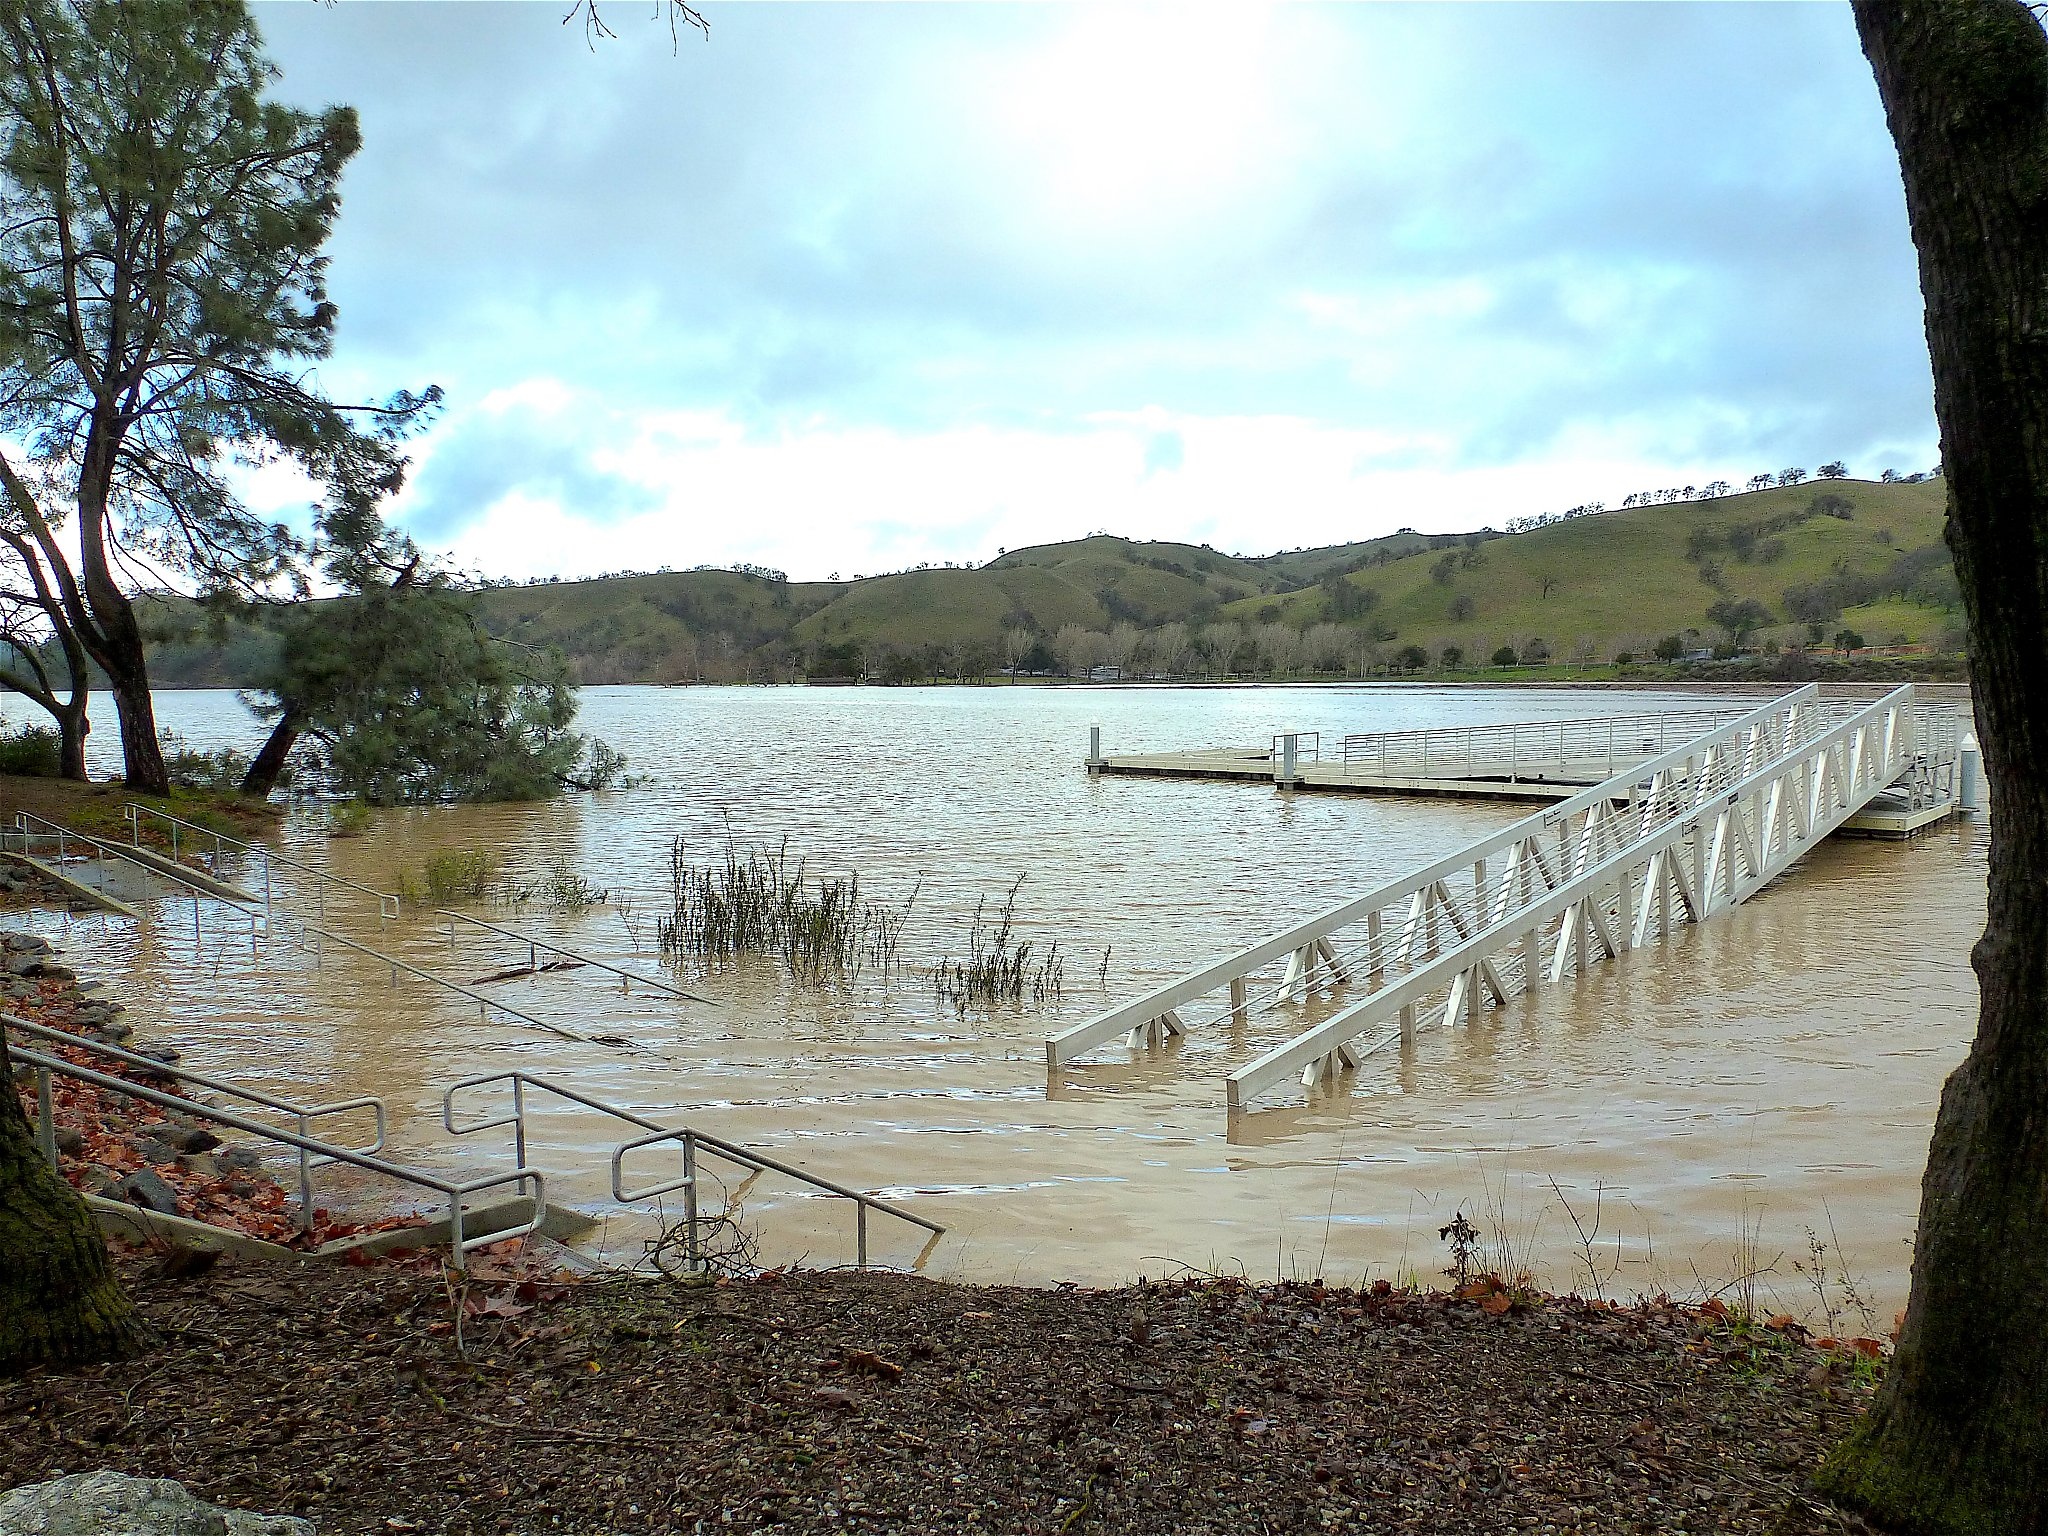 Del valle emerges from winter flooding san francisco for Lake del valle fishing report